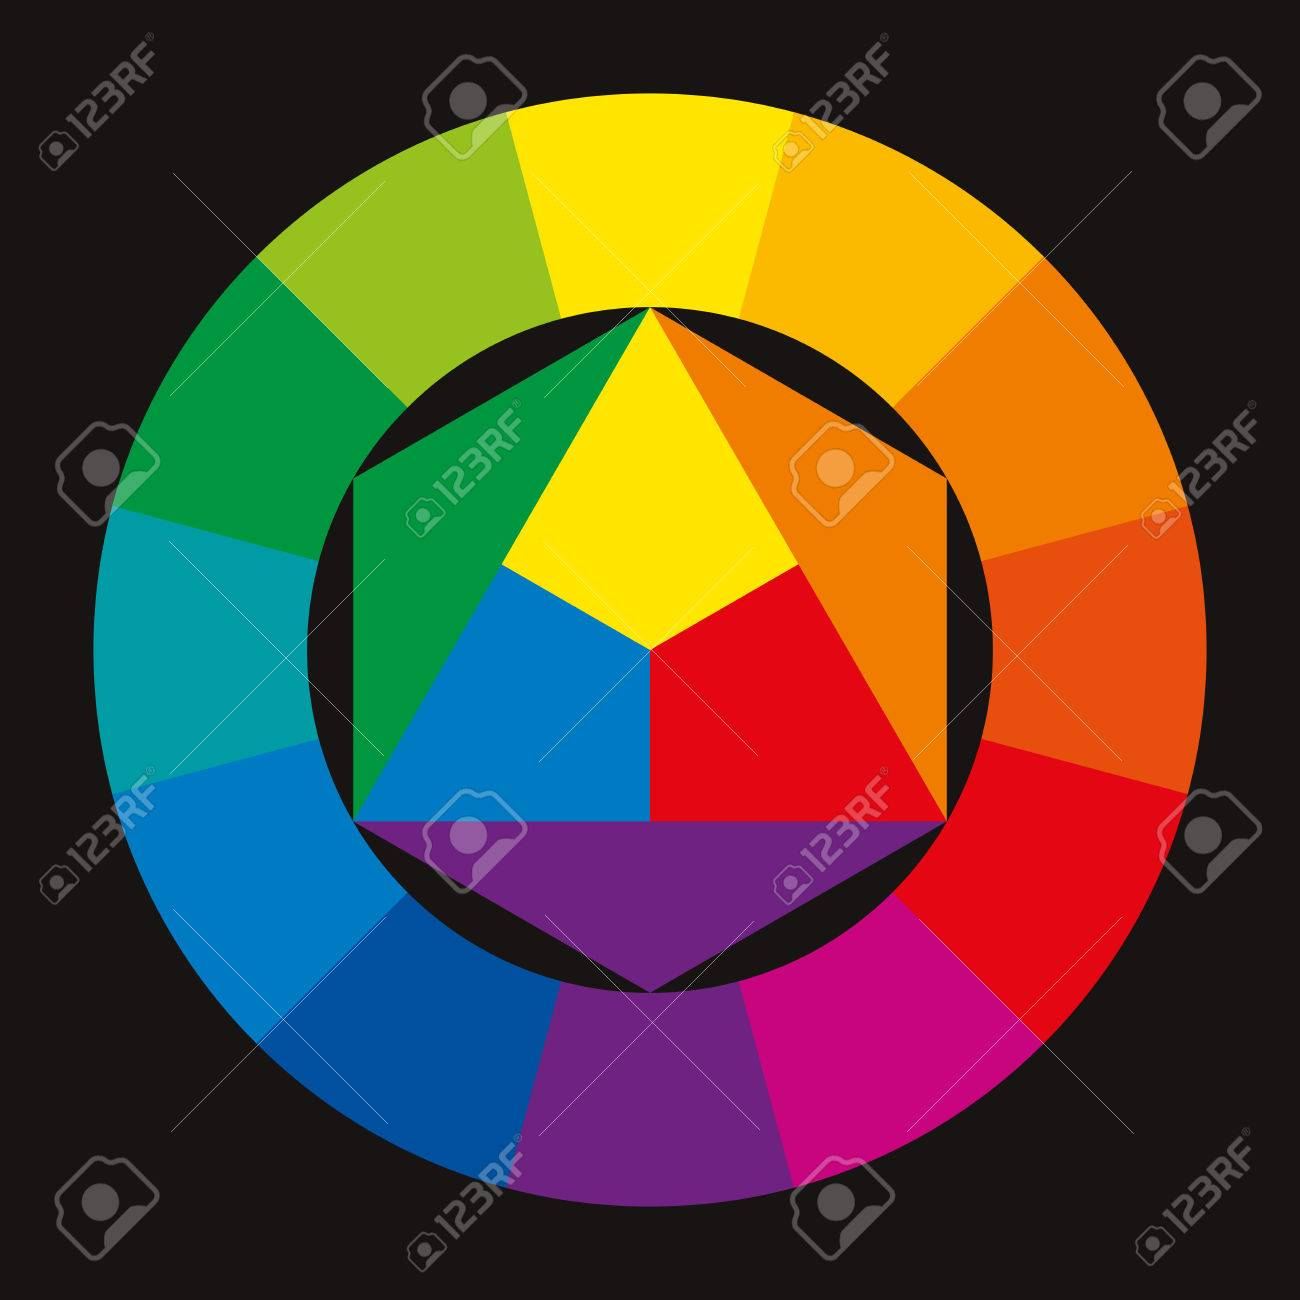 Color Wheel On Black Background Showing The Complementary Colors ...